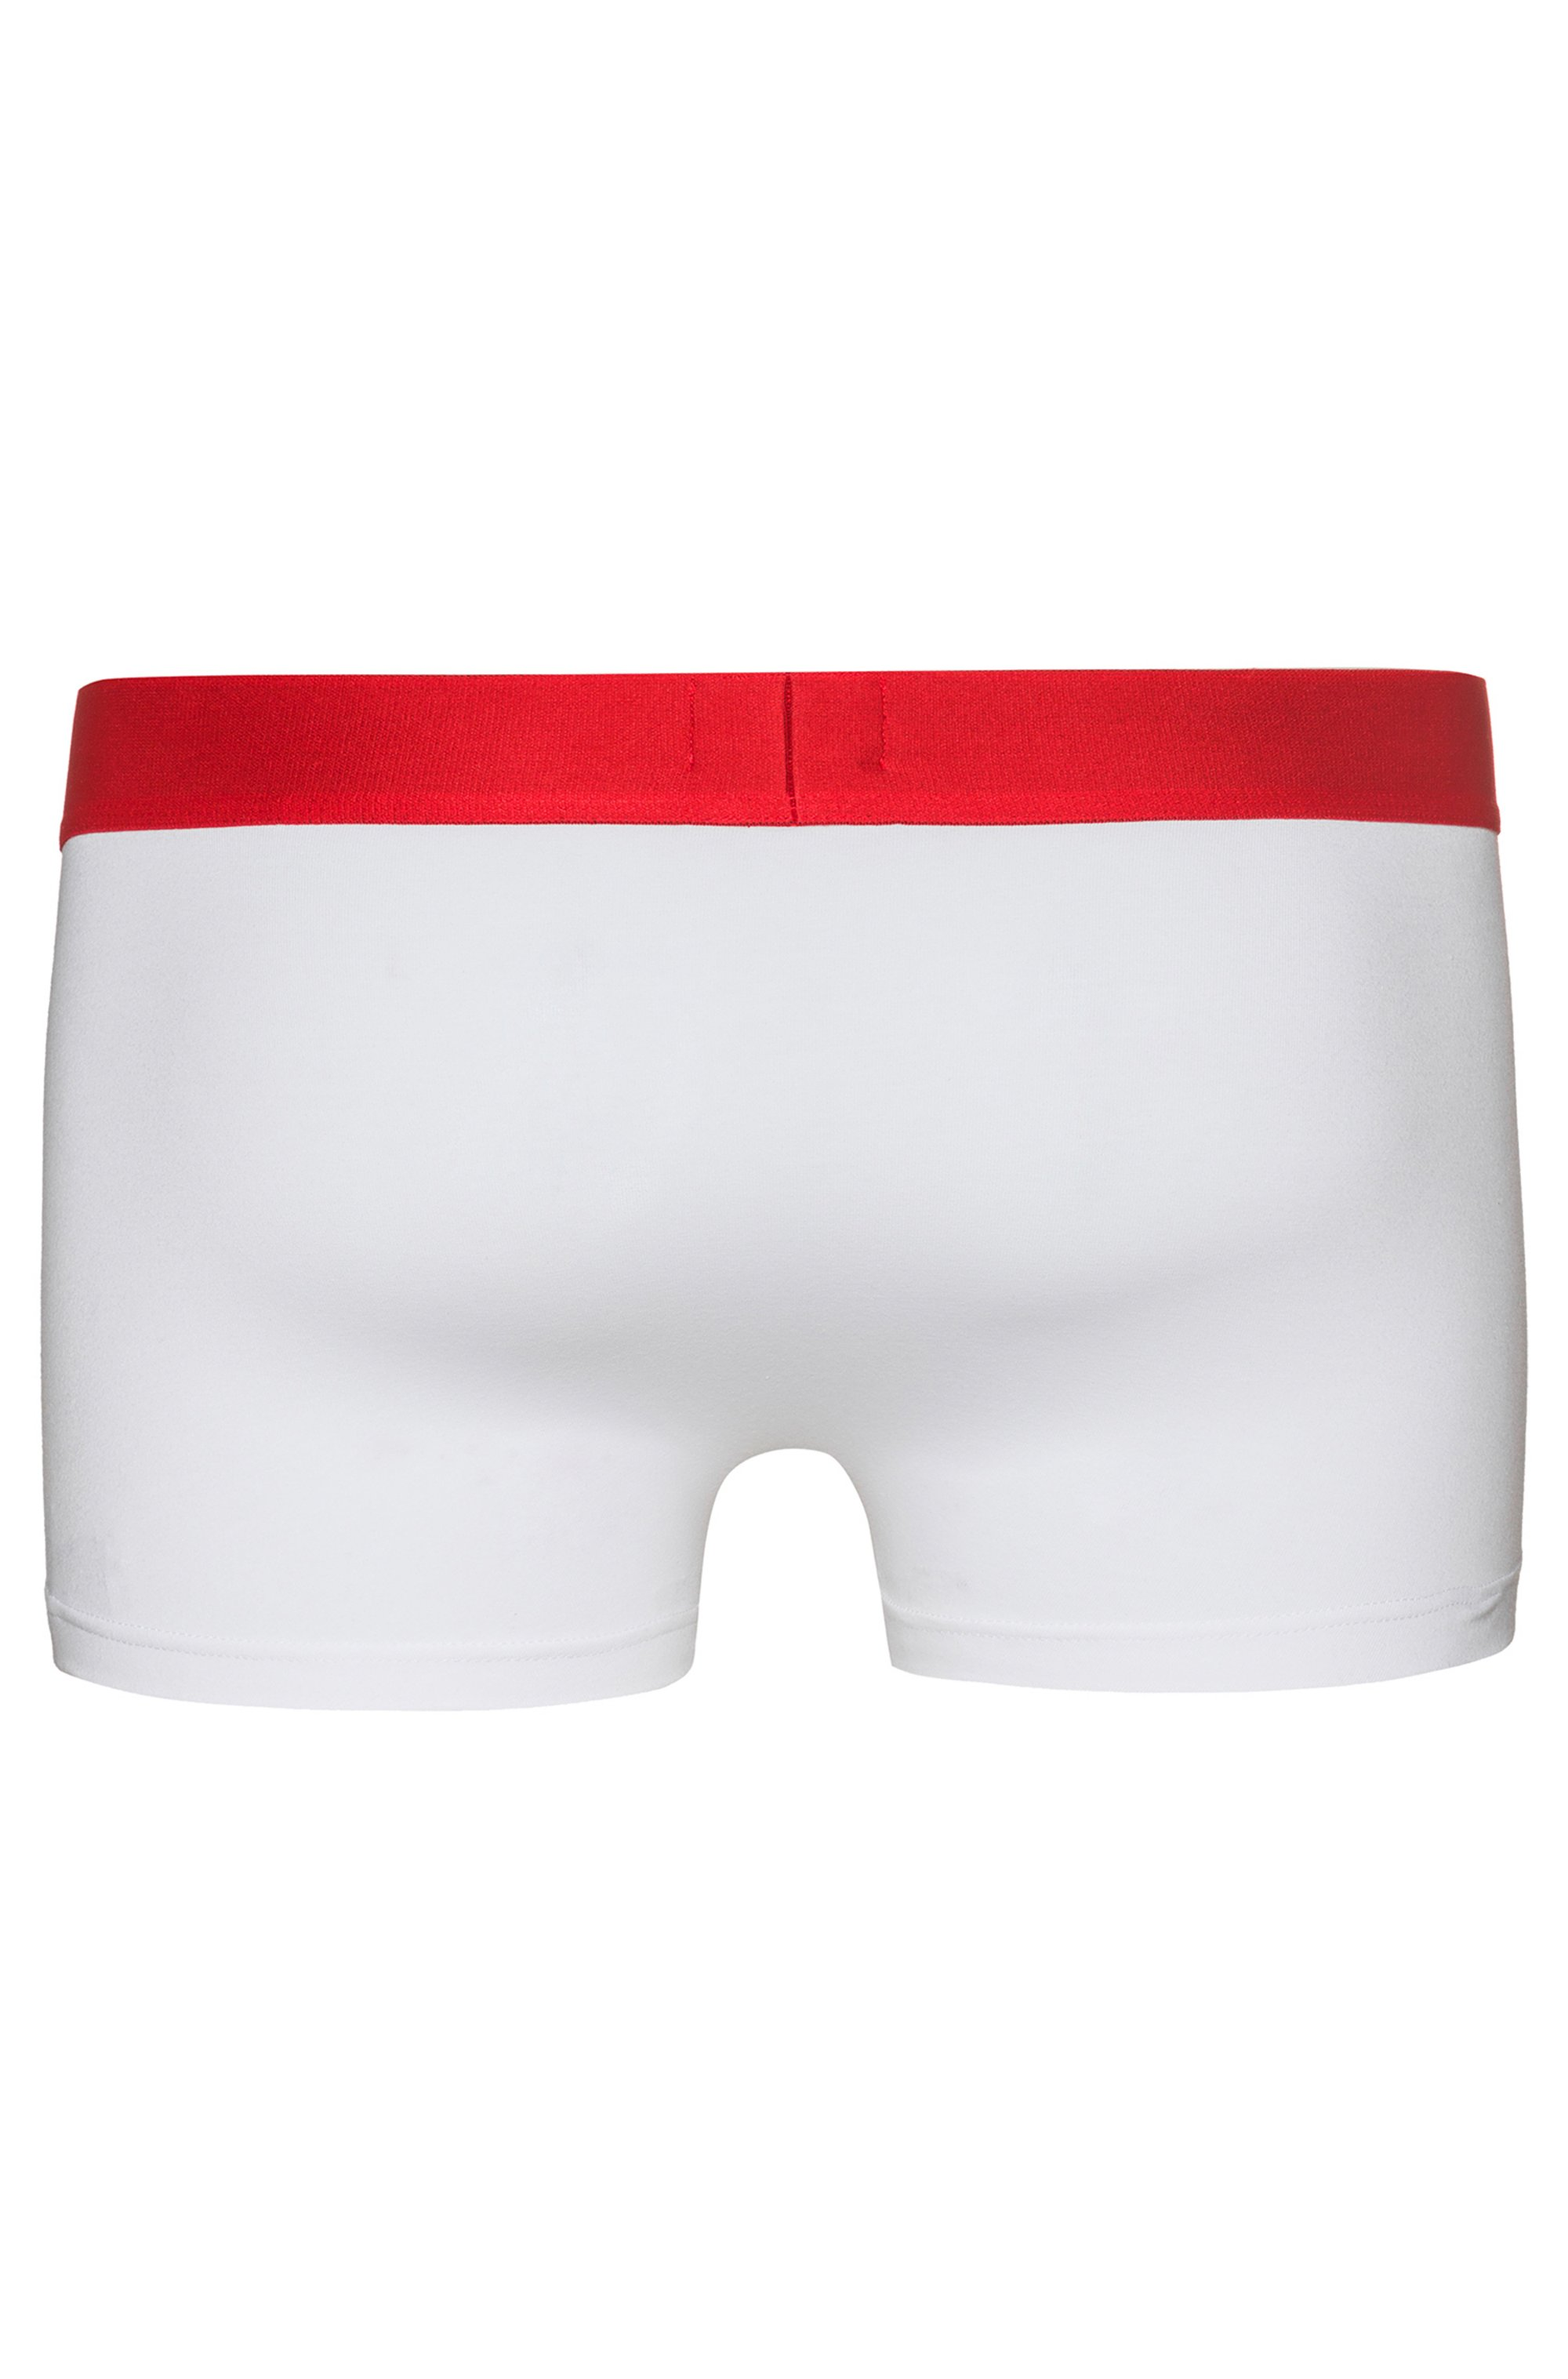 Low-rise trunks in stretch cotton with logo waistband